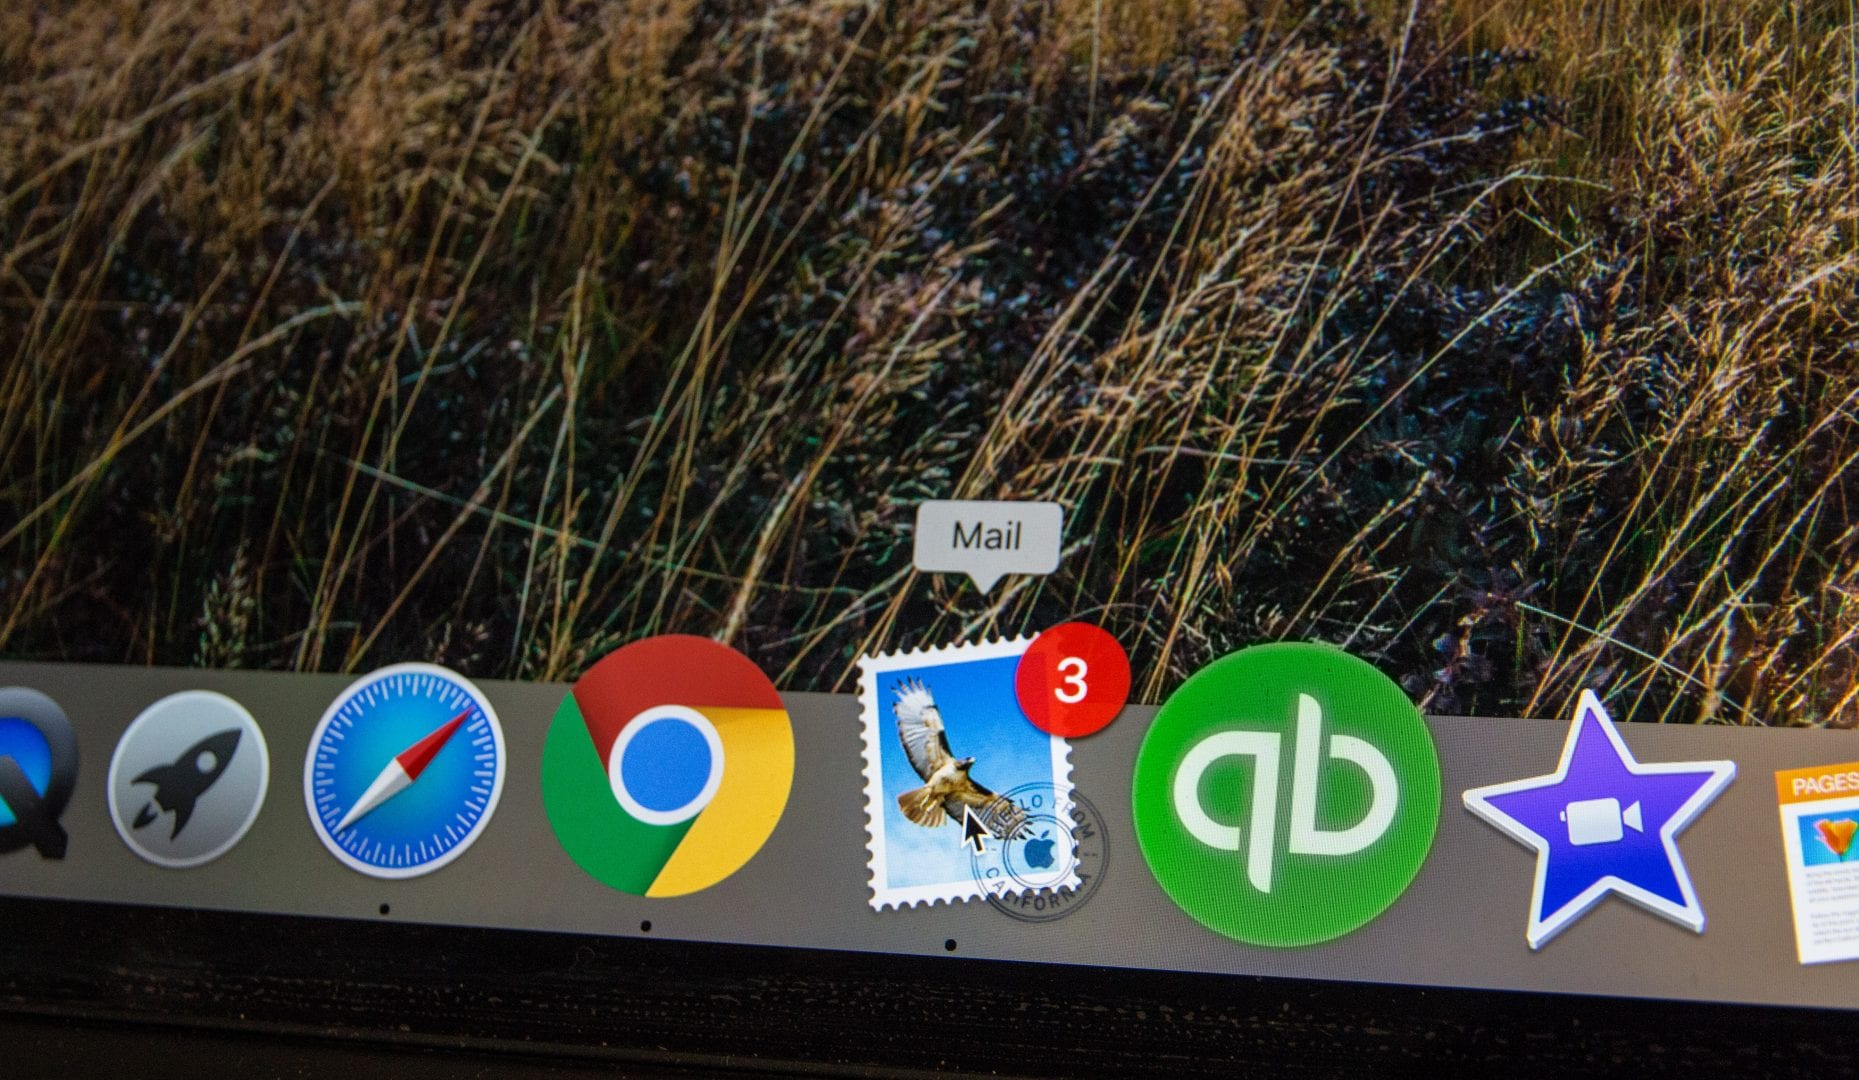 a menu bar of a computer screen showing the icons for different features including an email icon with a notification for 3 new emails